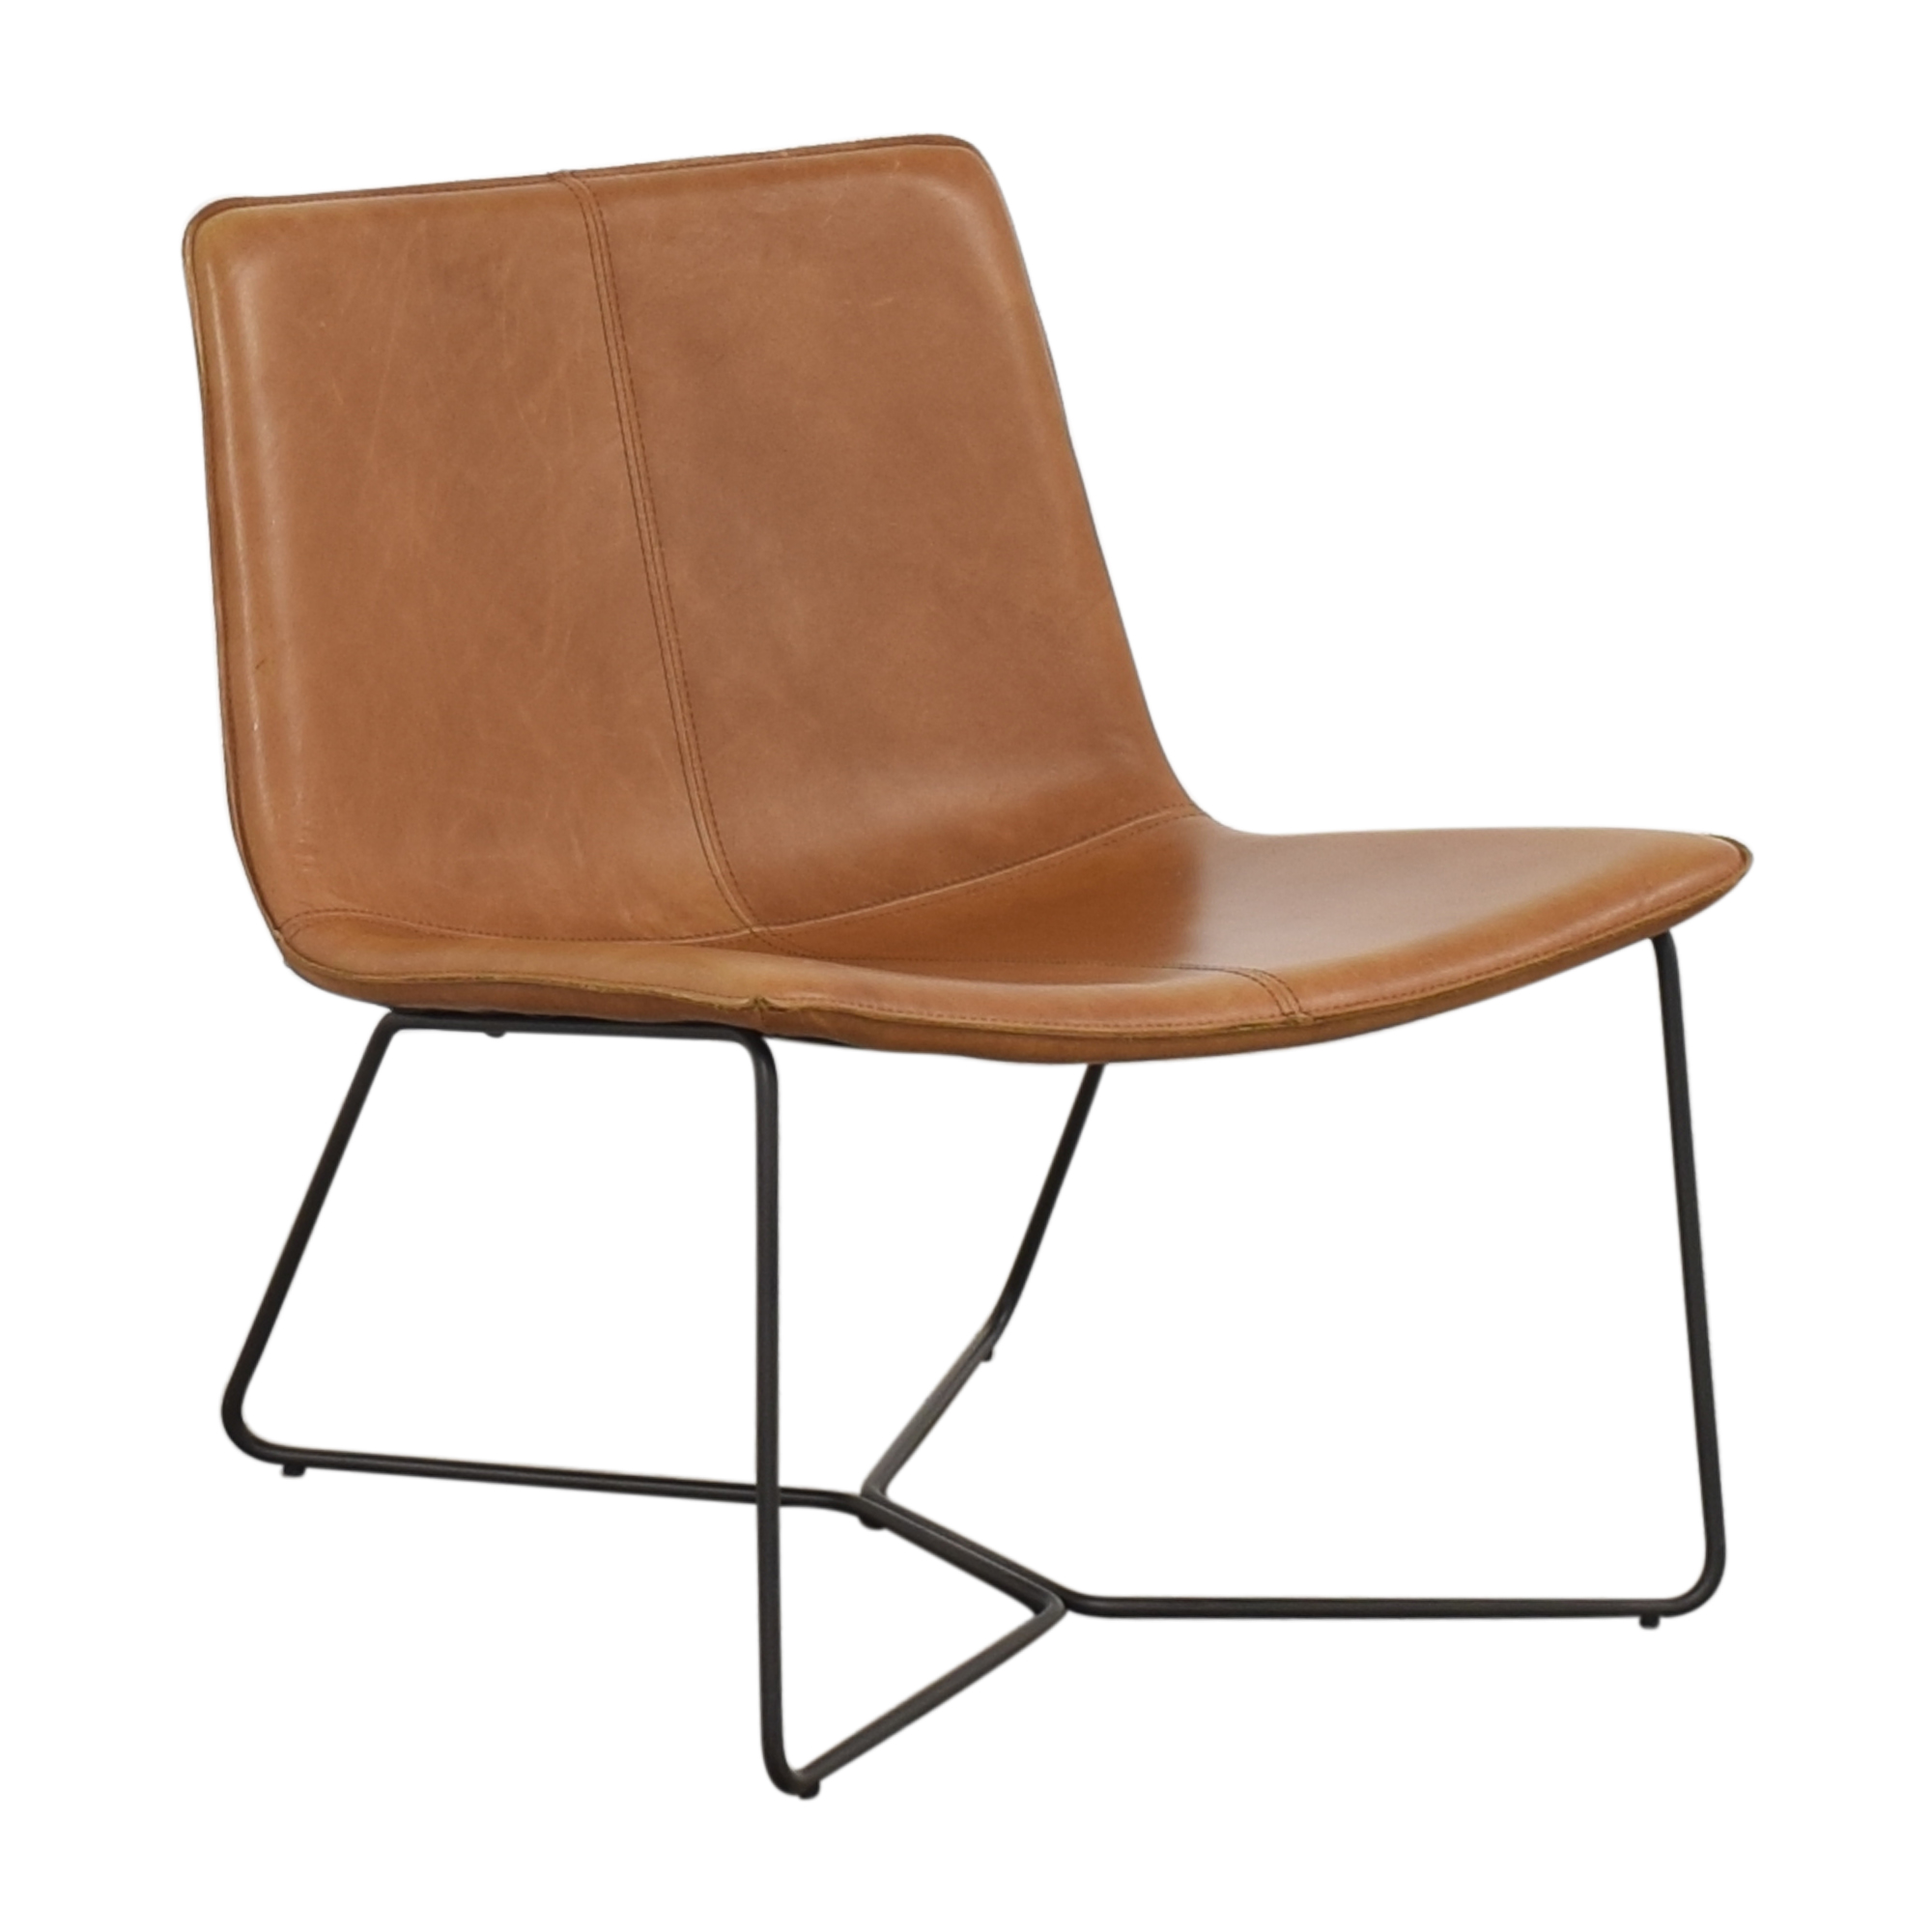 West Elm West Elm Slope Leather Lounge Chair second hand